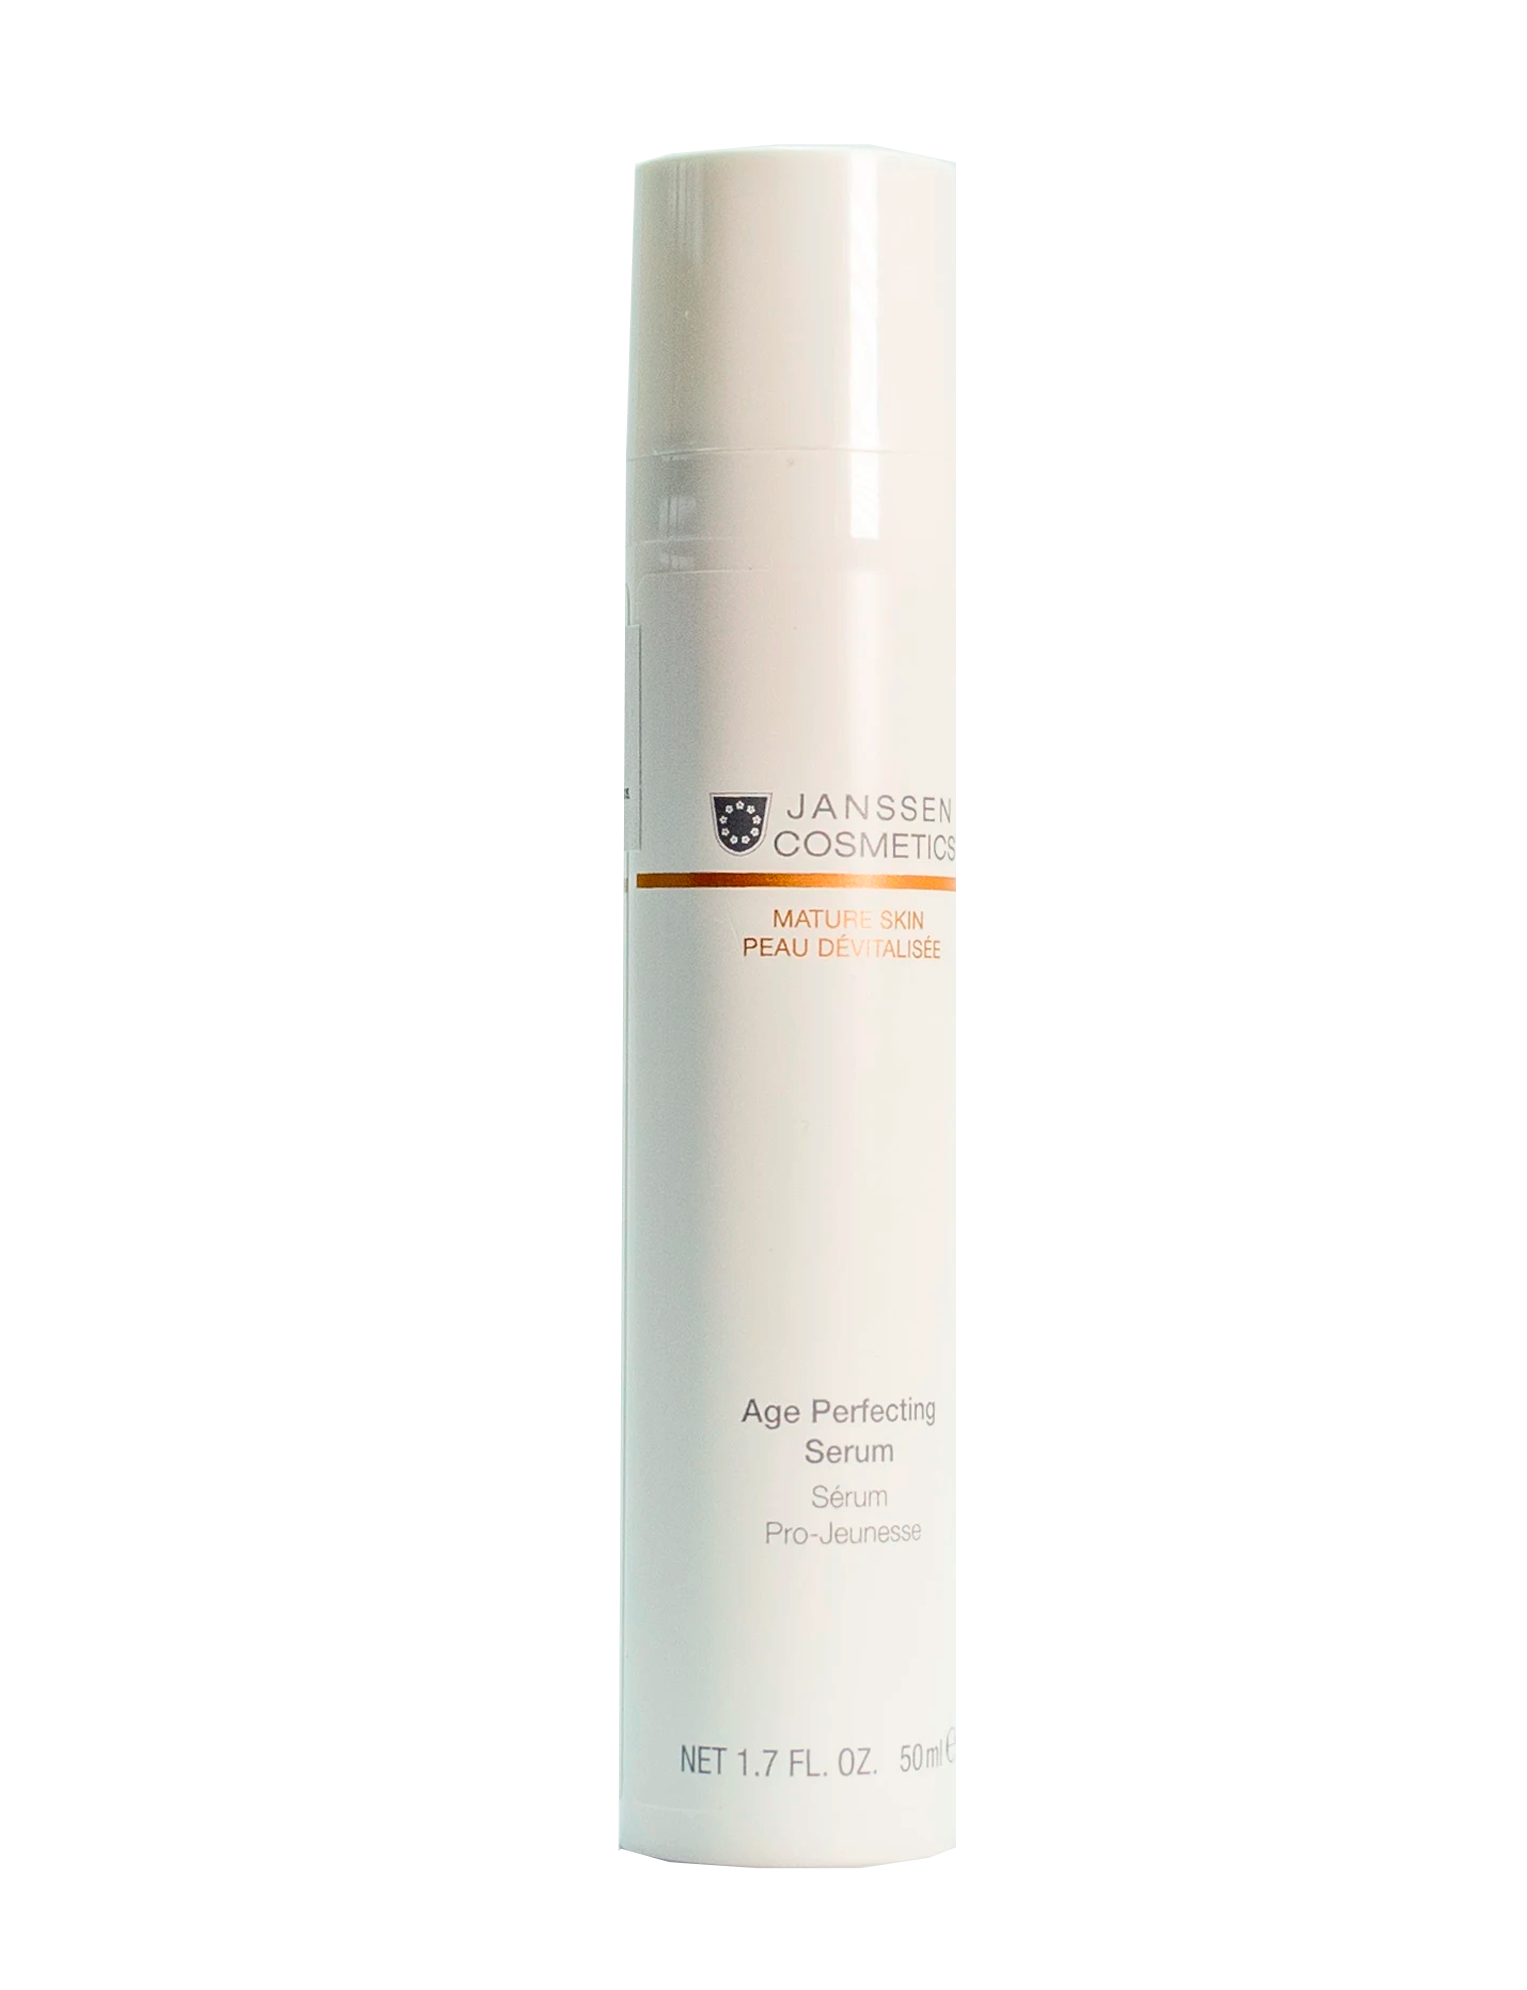 Suero Antiedad Age Perfecting Serum Janssen Cosmetics